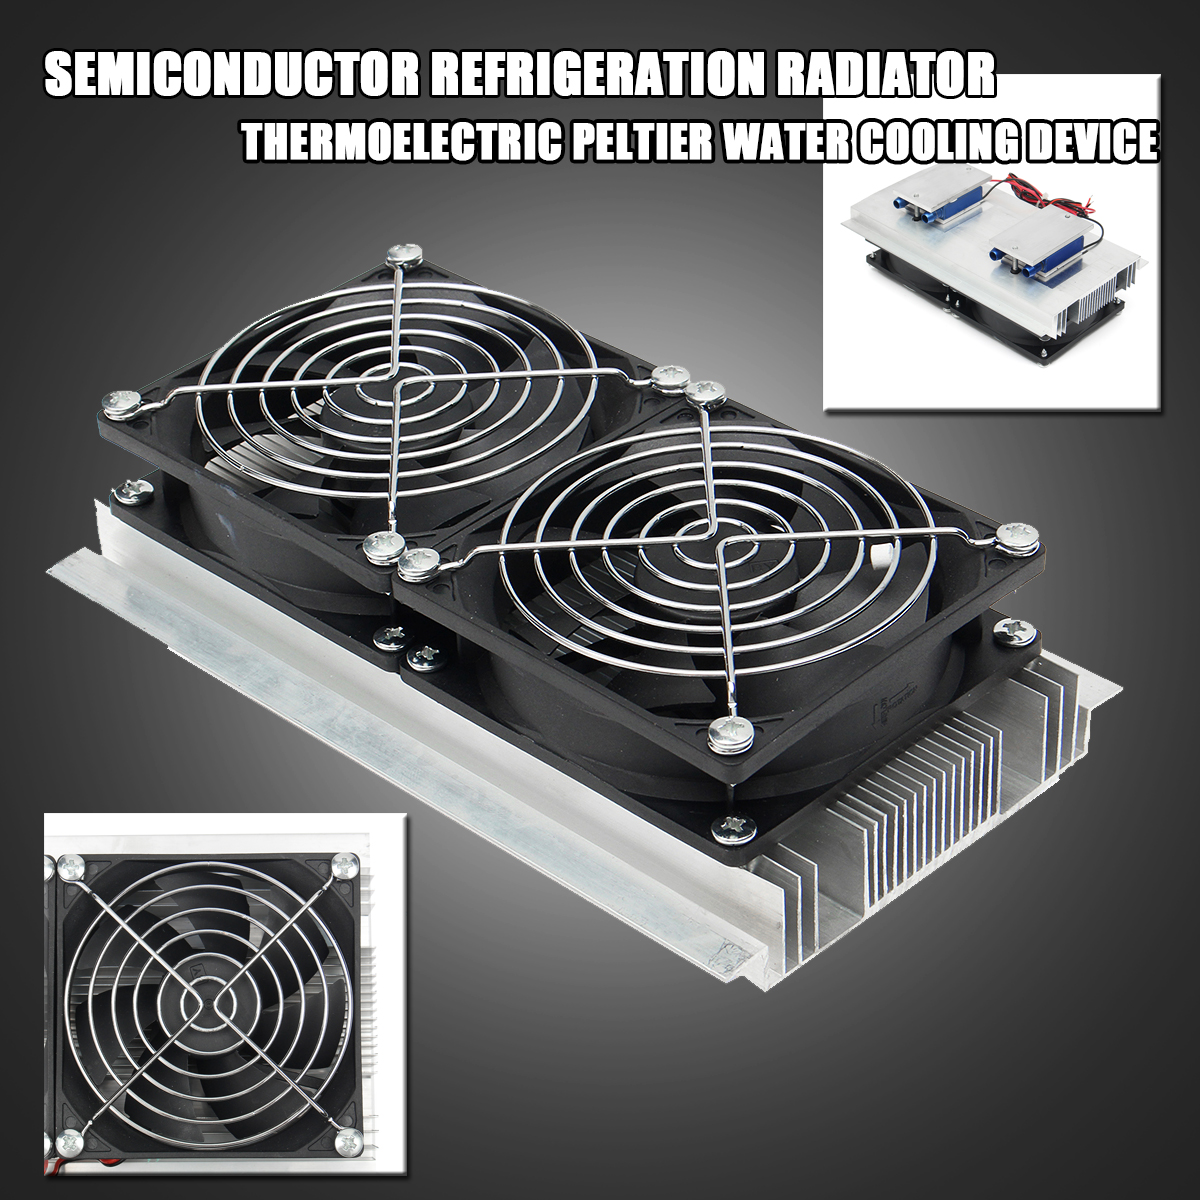 DC12V 120W Semiconductor Refrigeration Thermoelectric Refrigeration Cooler System Water Cooling Equipment Double Fan DIY special offer xd 2030 refrigeration unit module semiconductor cooling chiller refrigeration unit 240w